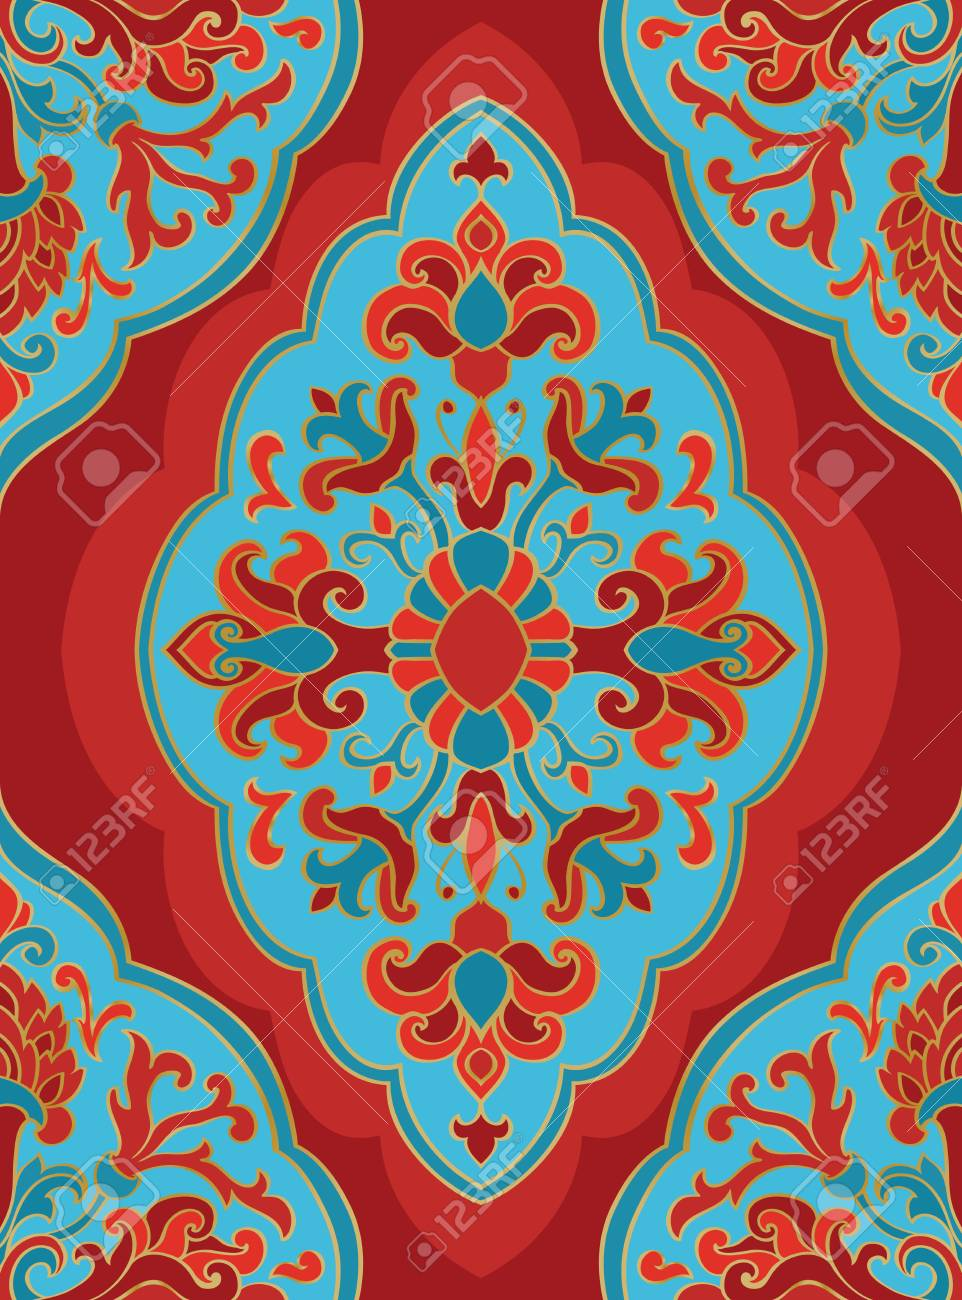 Teppich Blau Ornament Stock Photo